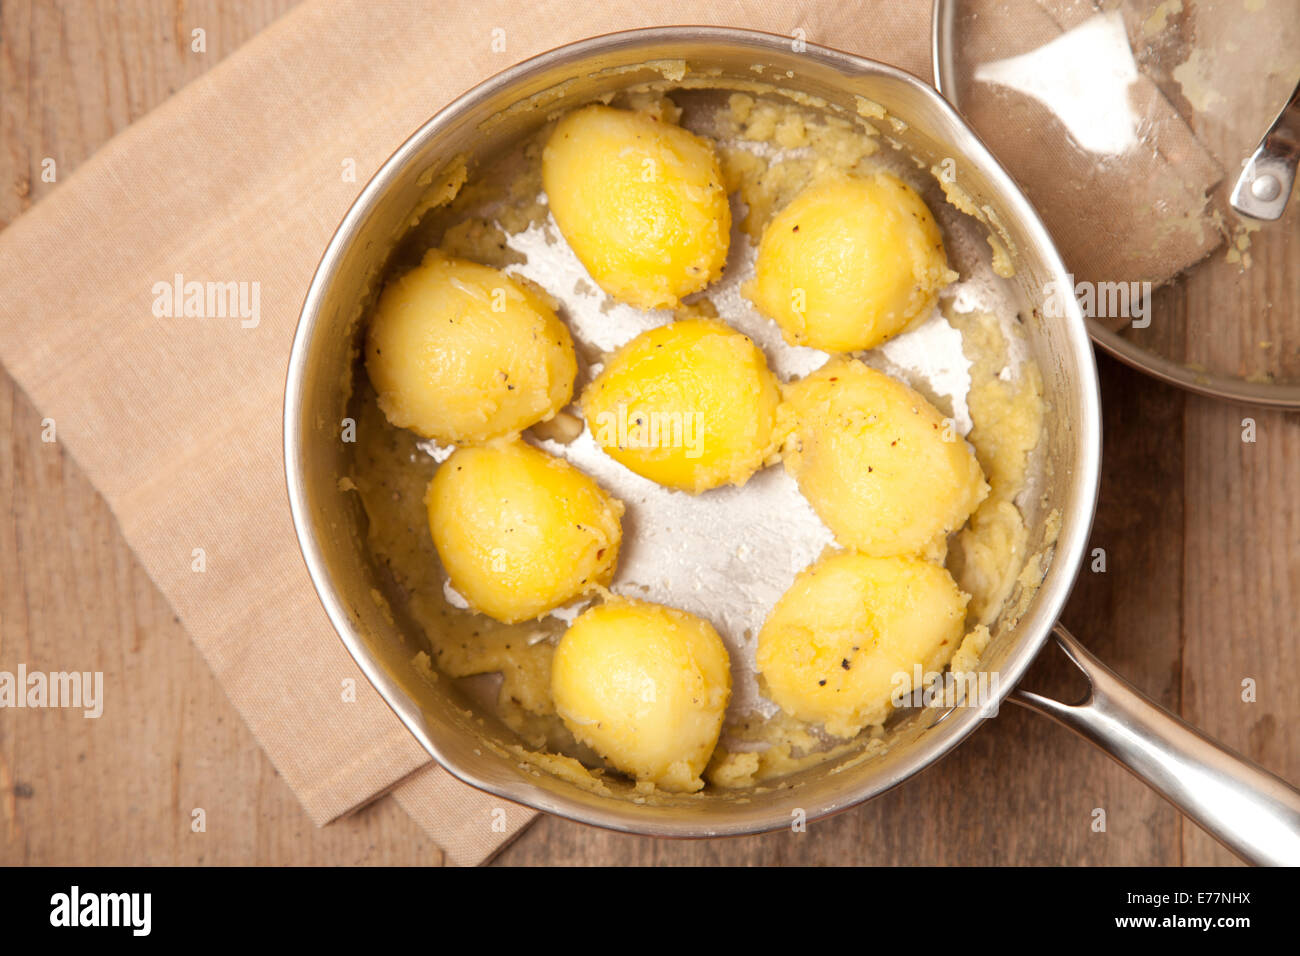 fluff potatoes in saucepan on wooden table - Stock Image